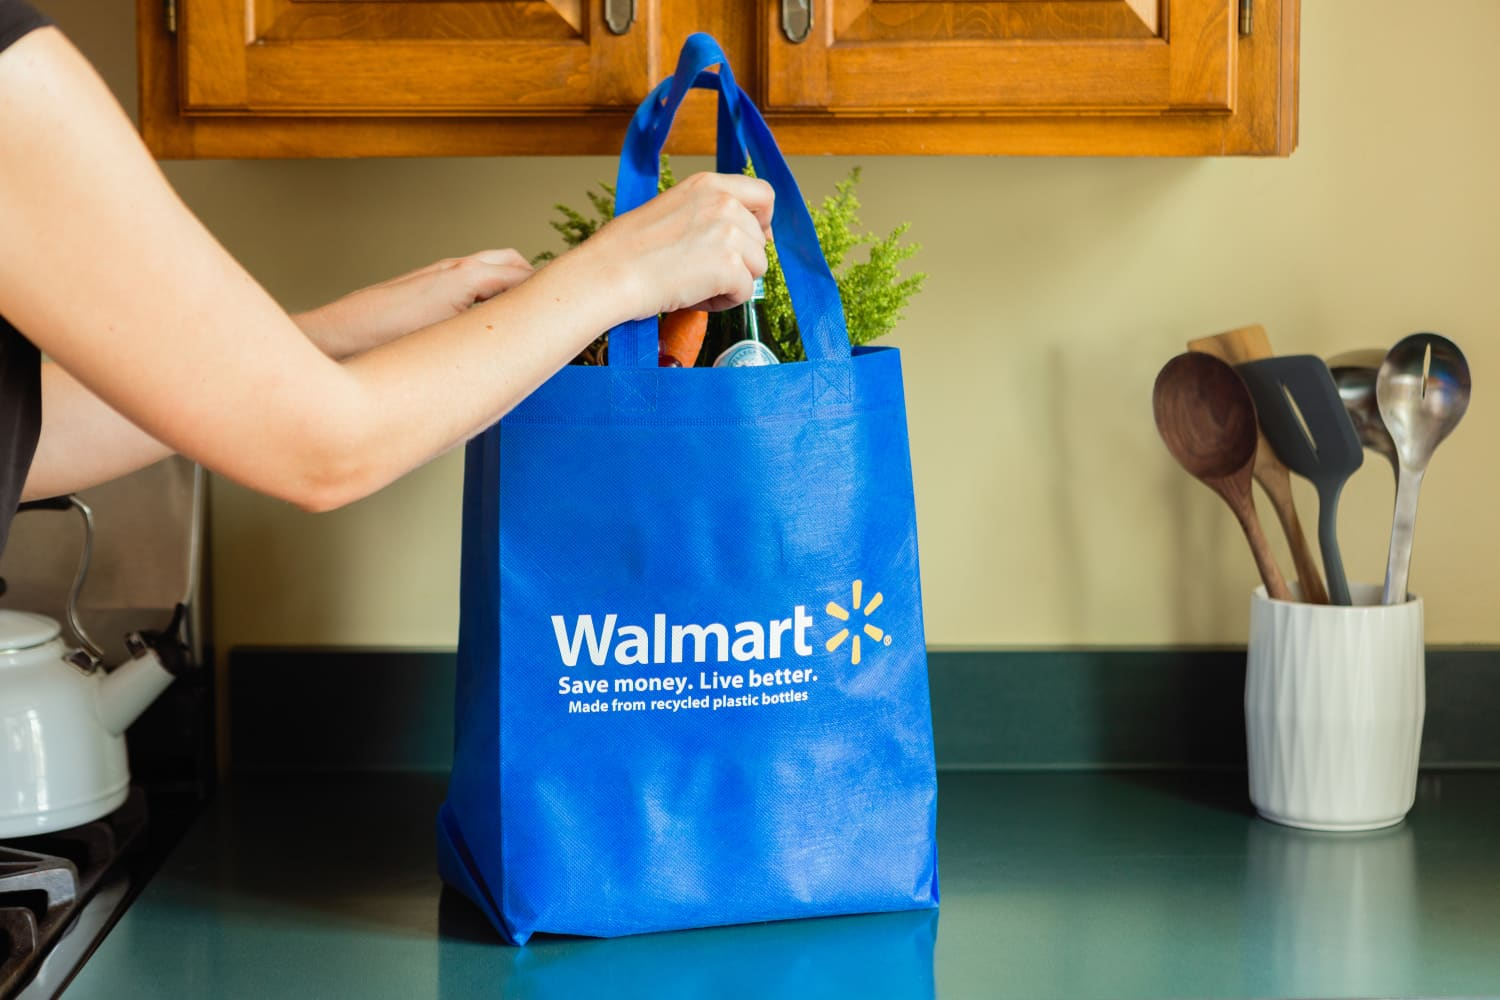 The 12 Best New Foods to Buy at Walmart, According to a Nutritionist